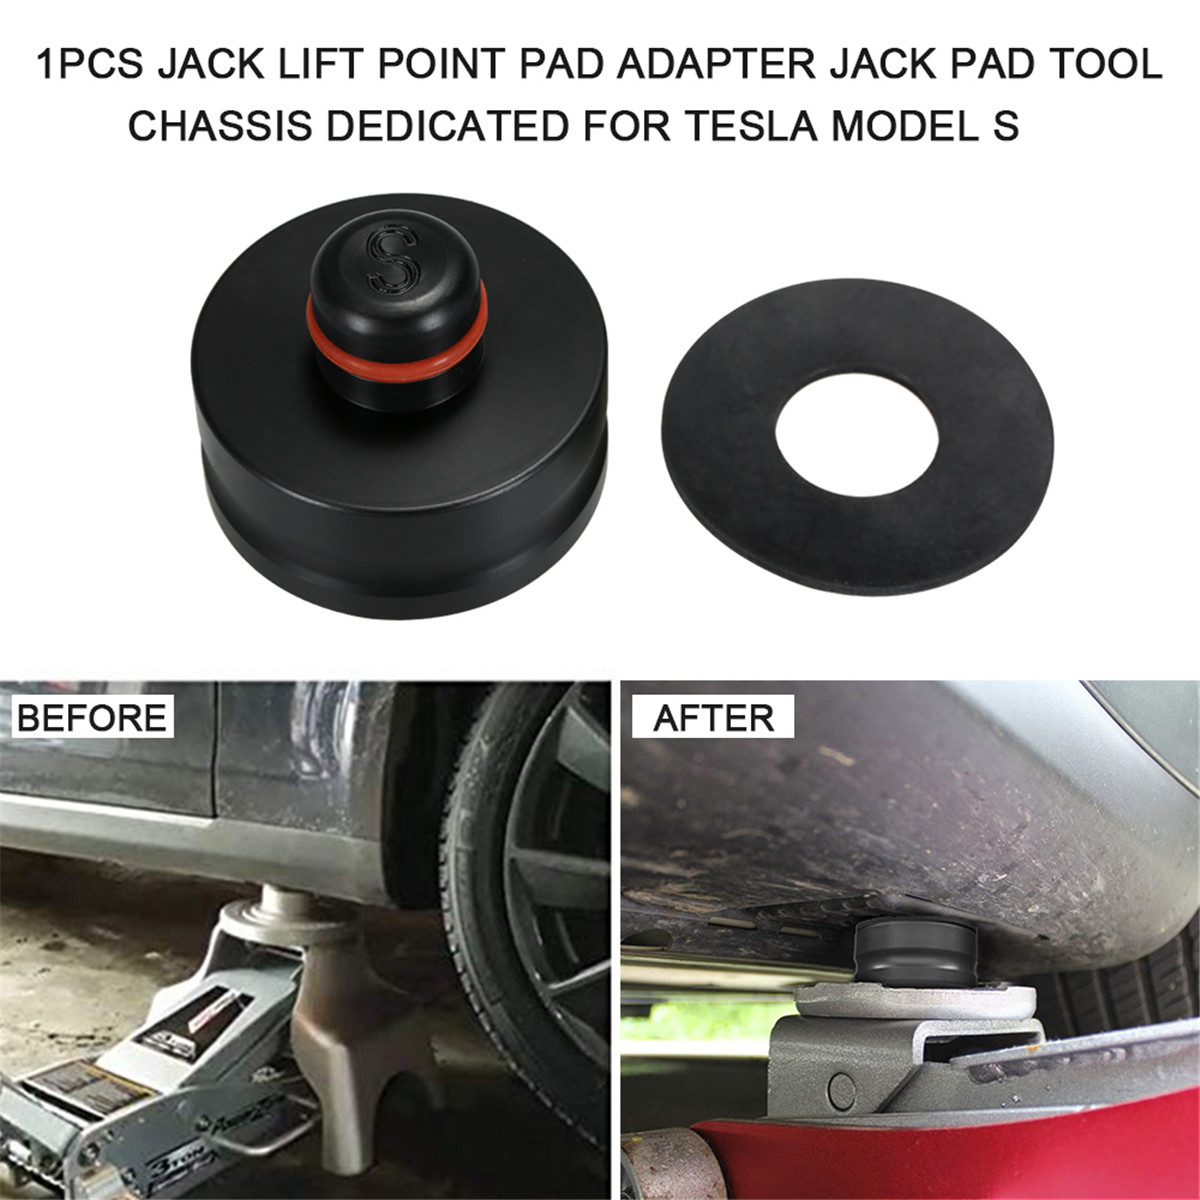 1pc Jack Lift Point Pad Car Styling Tools Jack Lift Raise Chassis Specific Jack Pad Tool Lift Point Adapter For Tesla Model X/S